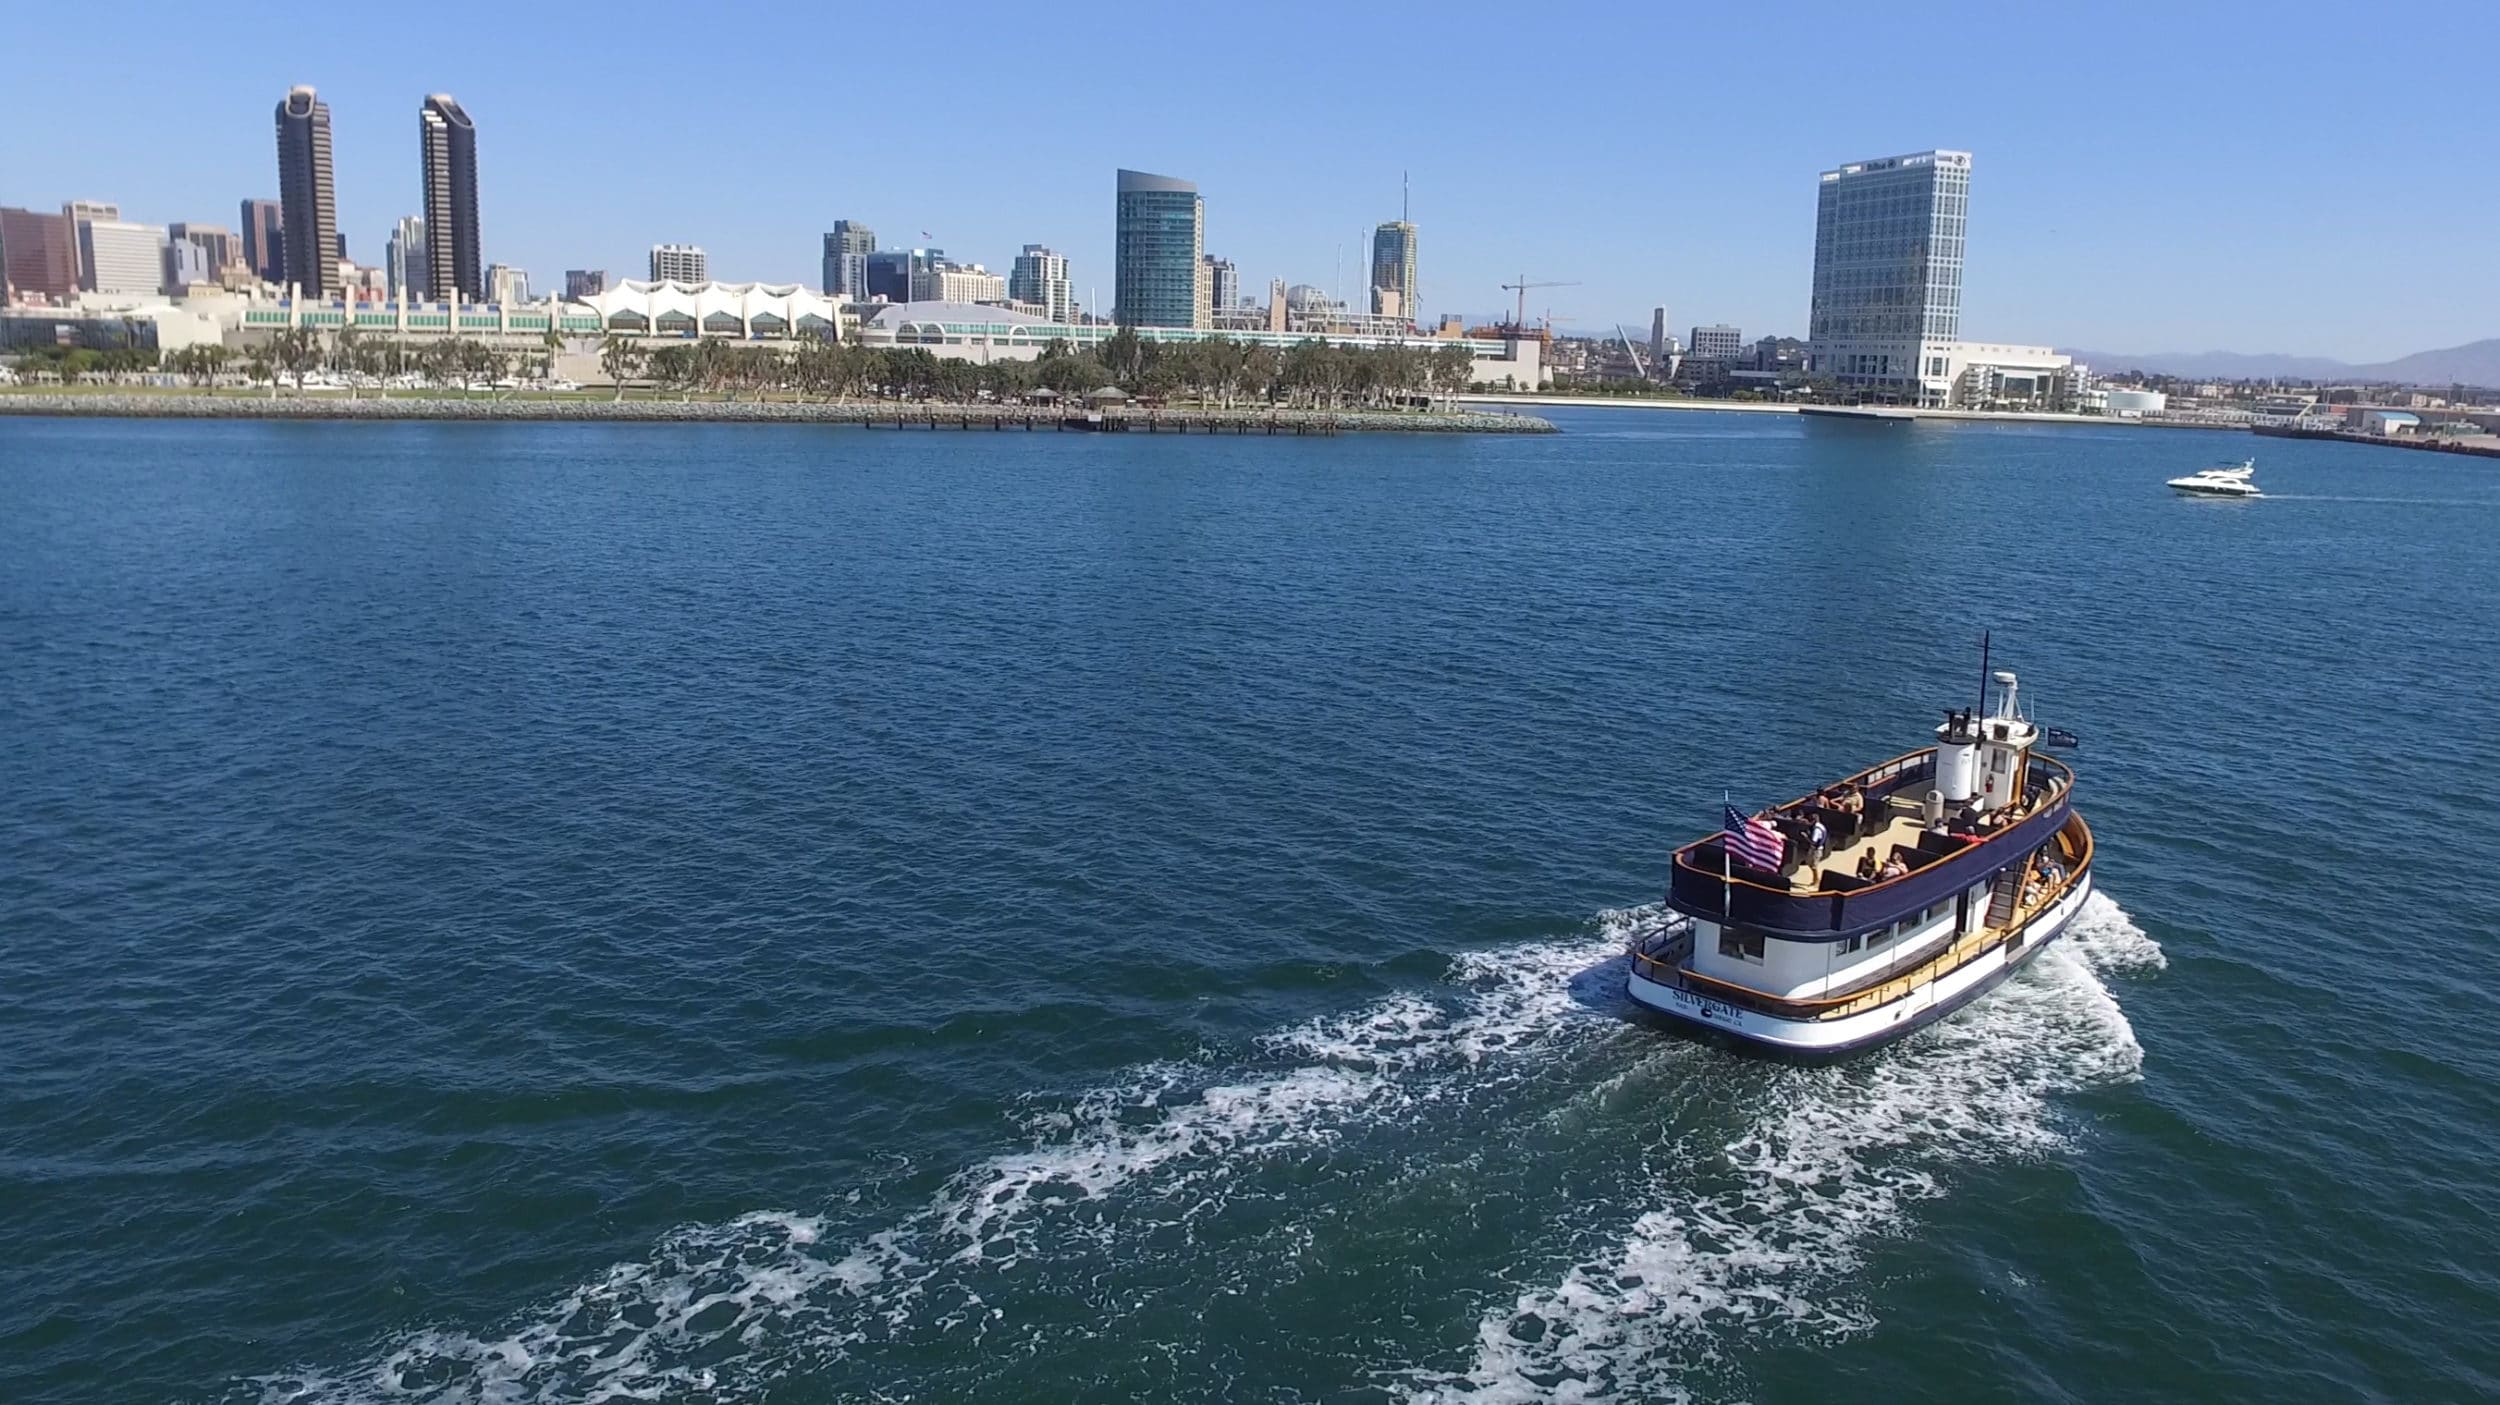 The Coronado Ferry is a way to sightsee on the San Diego Bay.